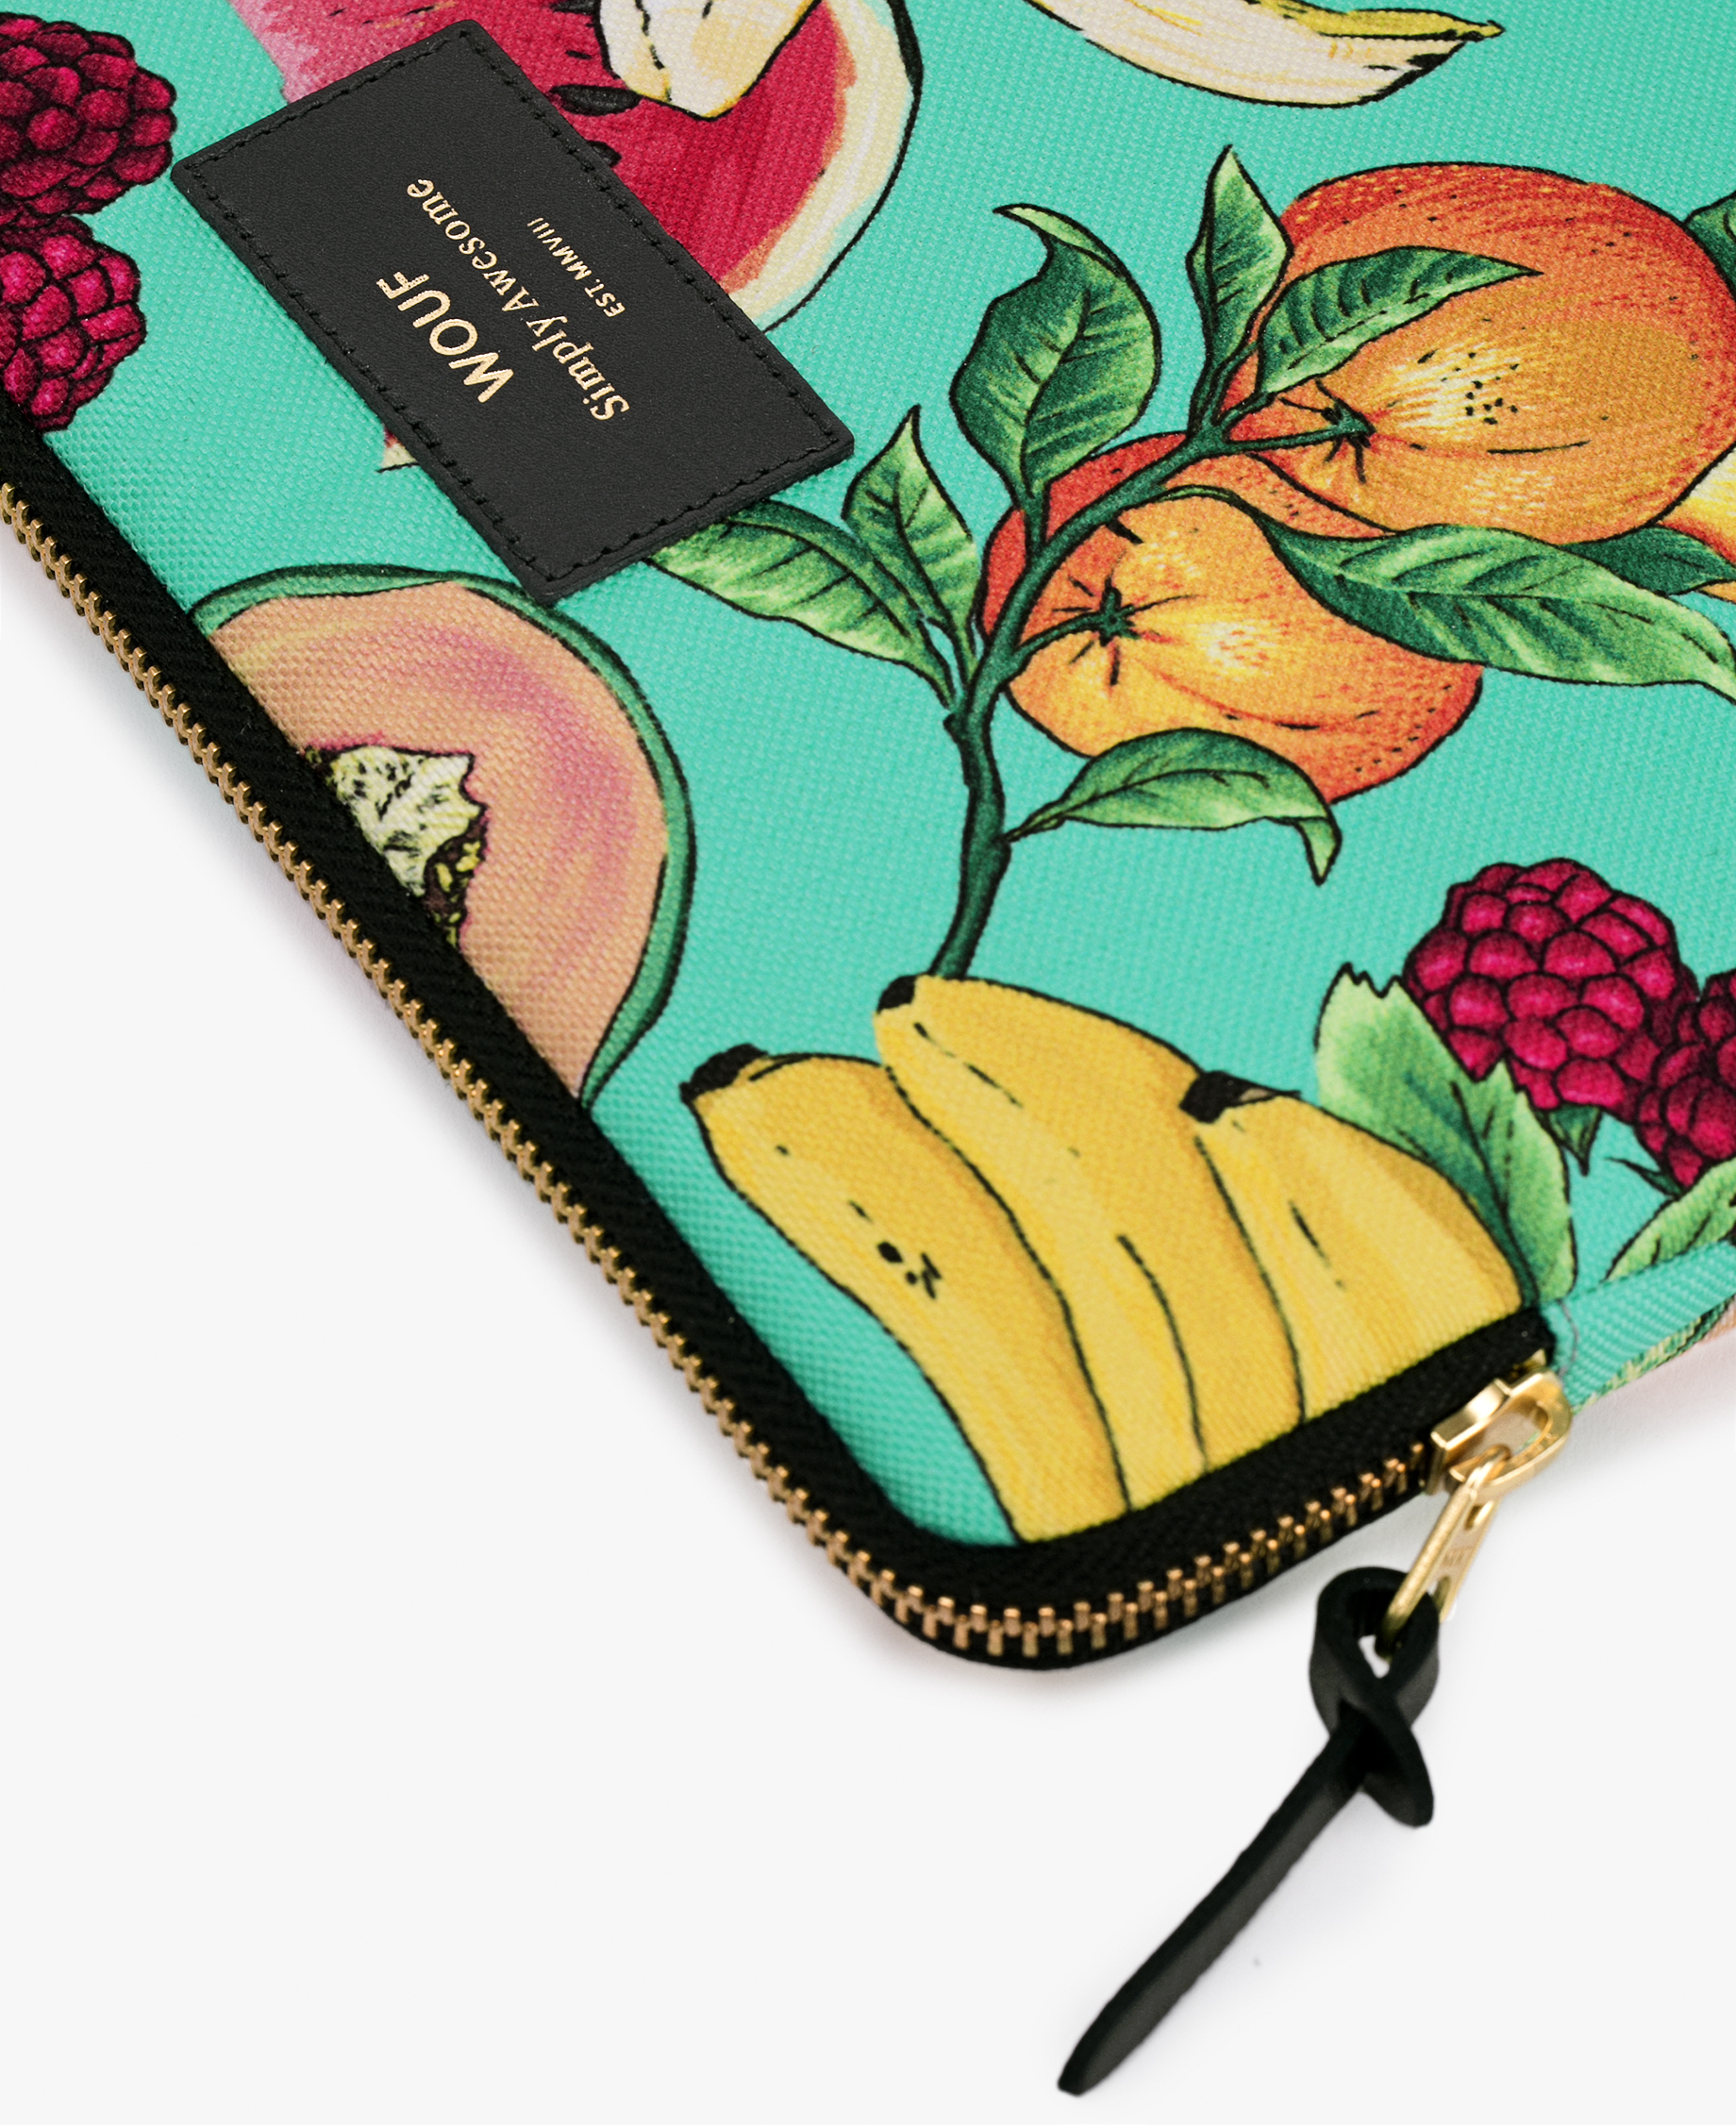 ipad sleeve details